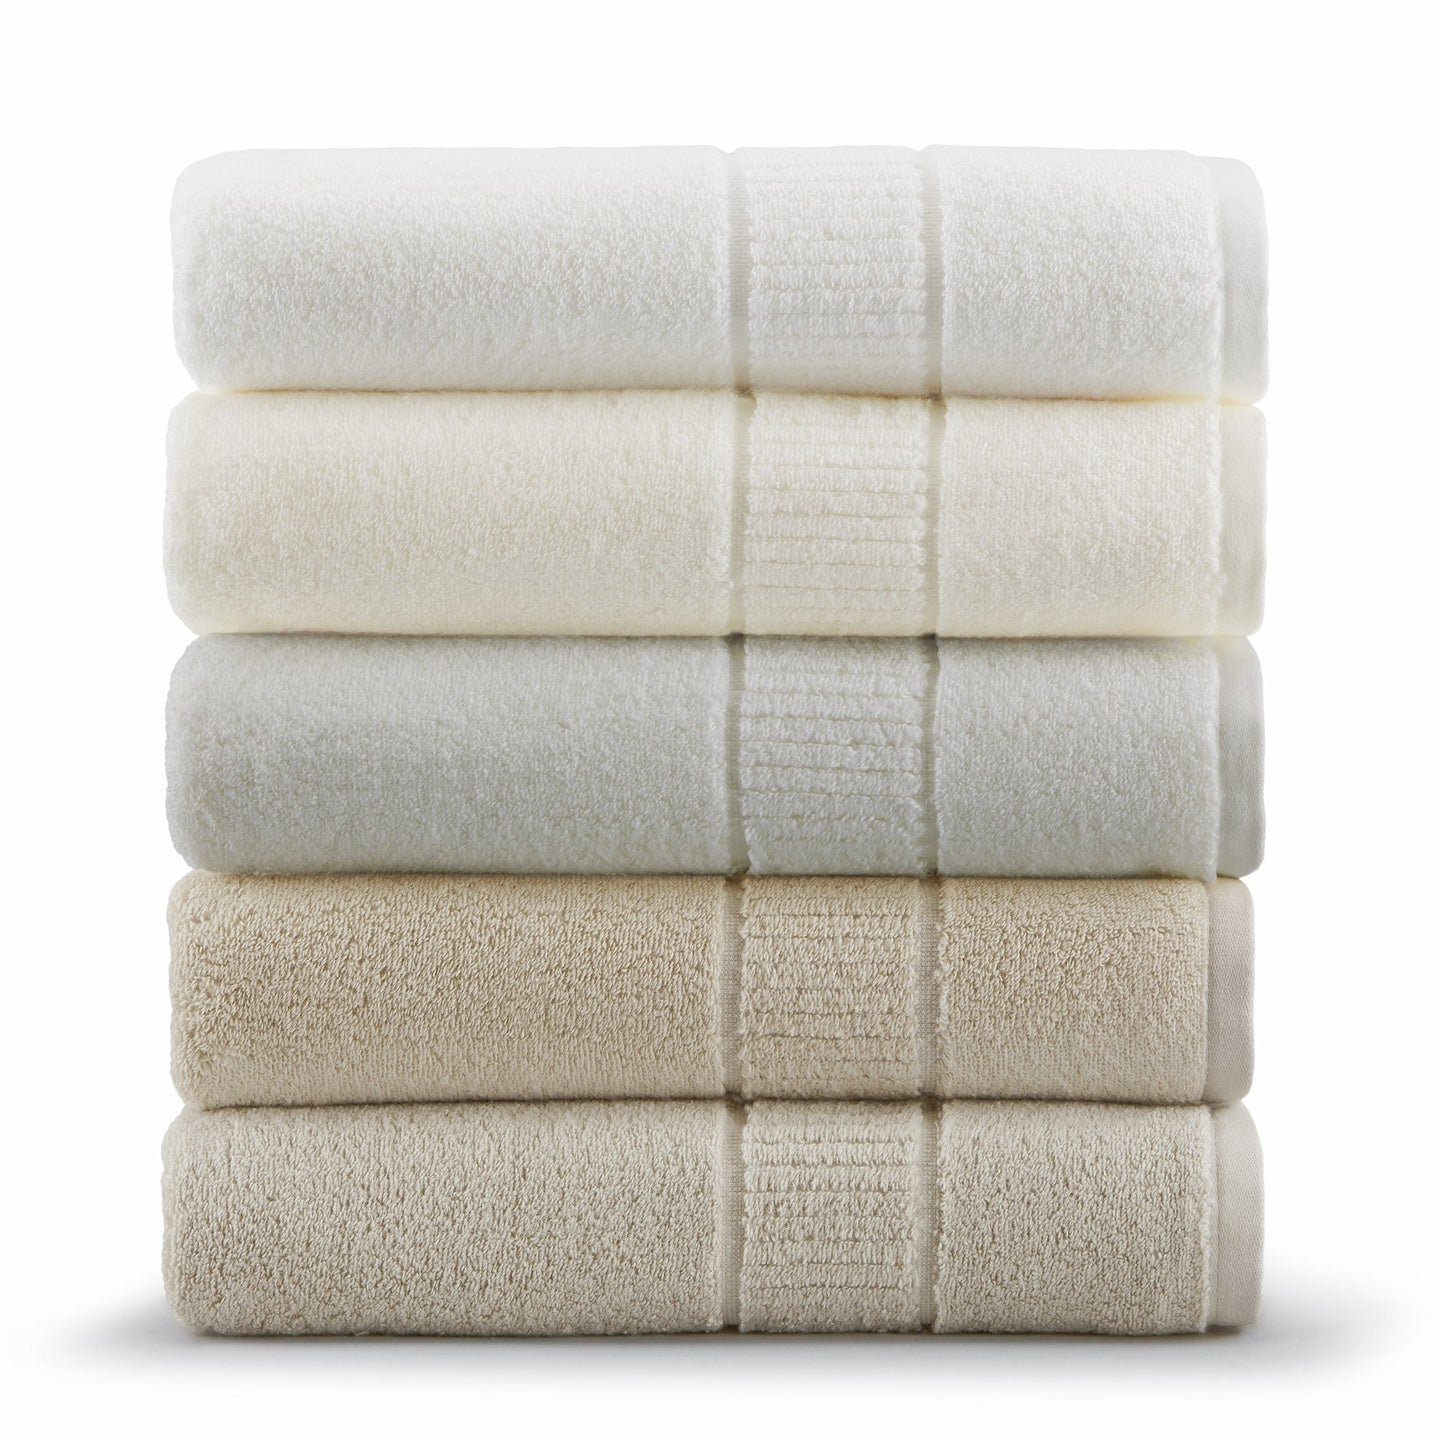 Zero twist cotton bath towel collection in white, ivory, linen, and flint